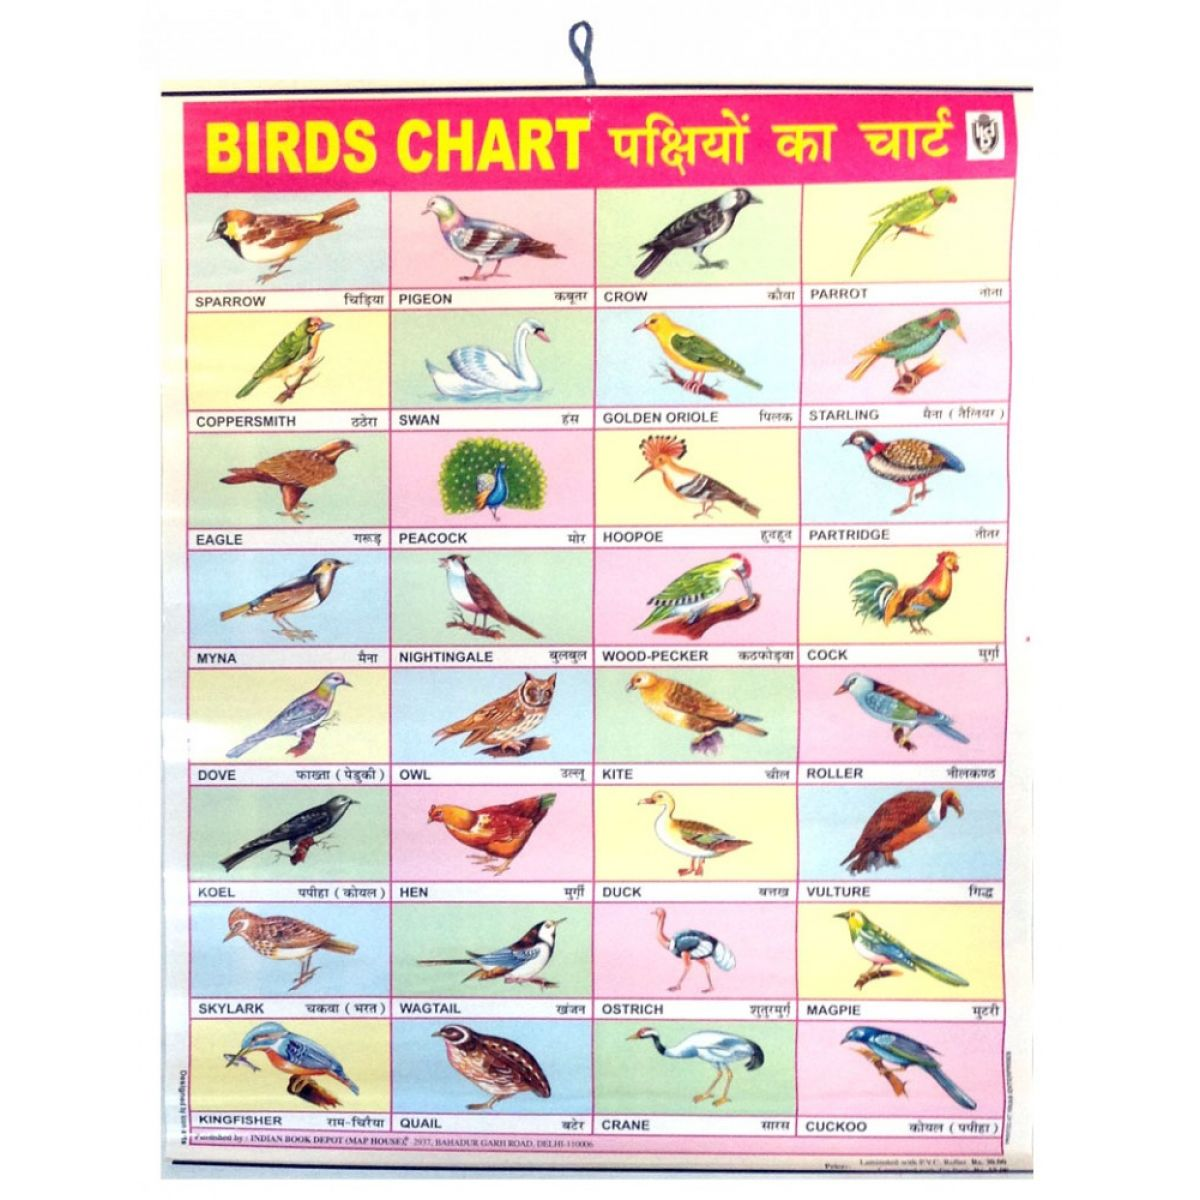 birds chart poster 57 x 45cm for the wall colored english hindi